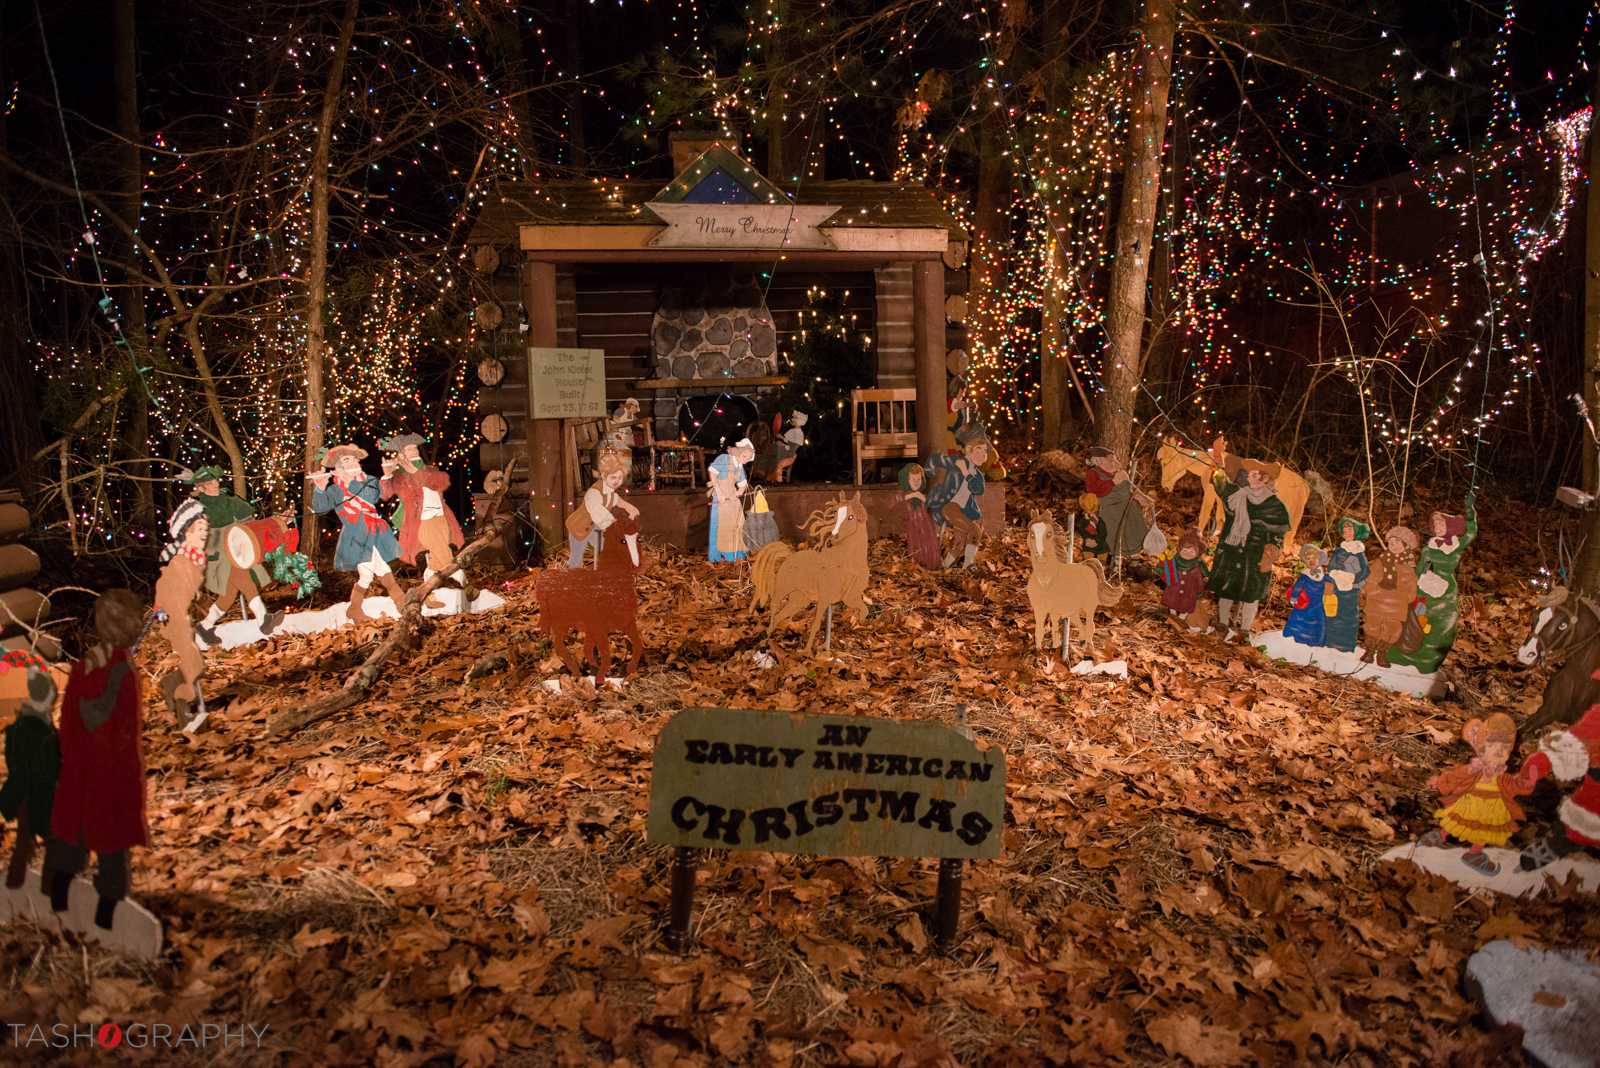 A display of an Early American Christmas - the details are just so amazing!